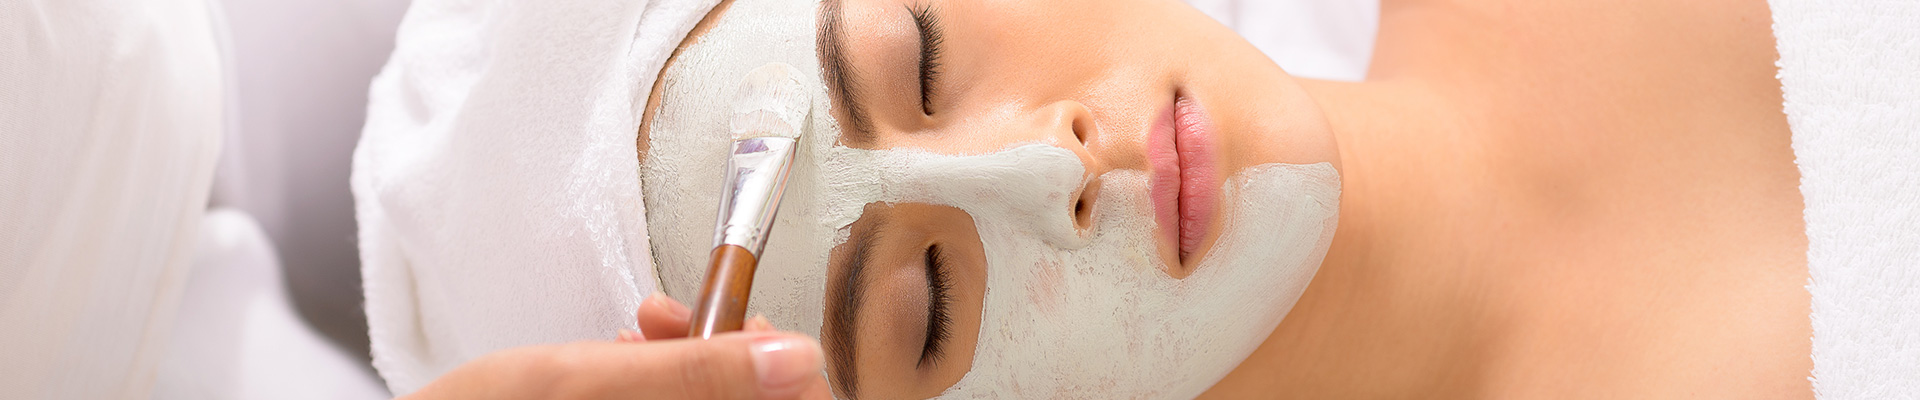 BEAUTY THERAPY @ LCBT Join our Health and Fitness courses